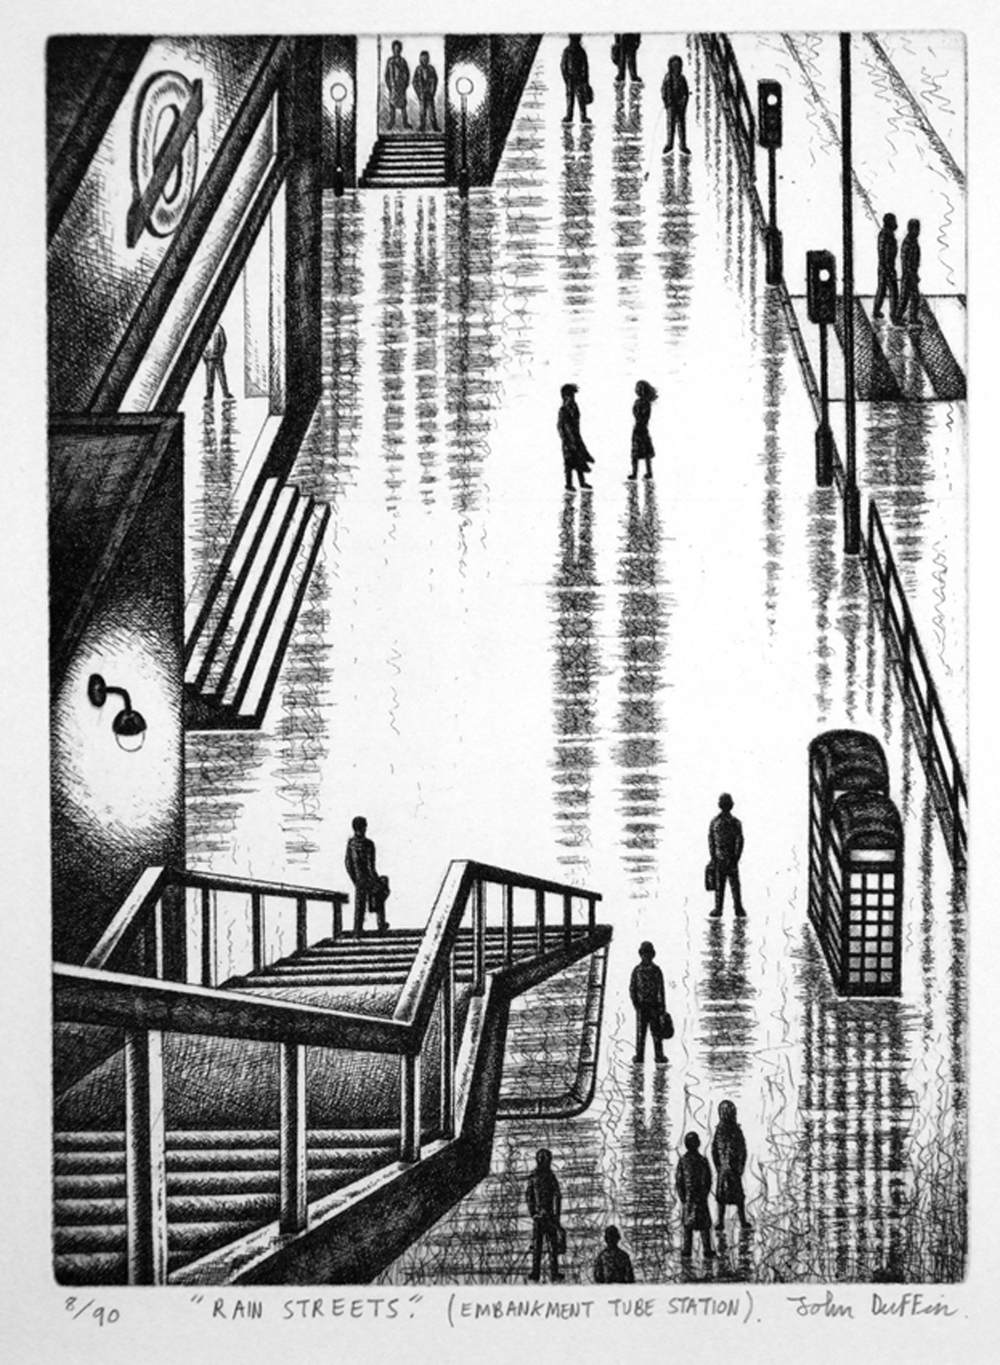 John Duffin   Rain Streets (Embankment Tube Station)   etching